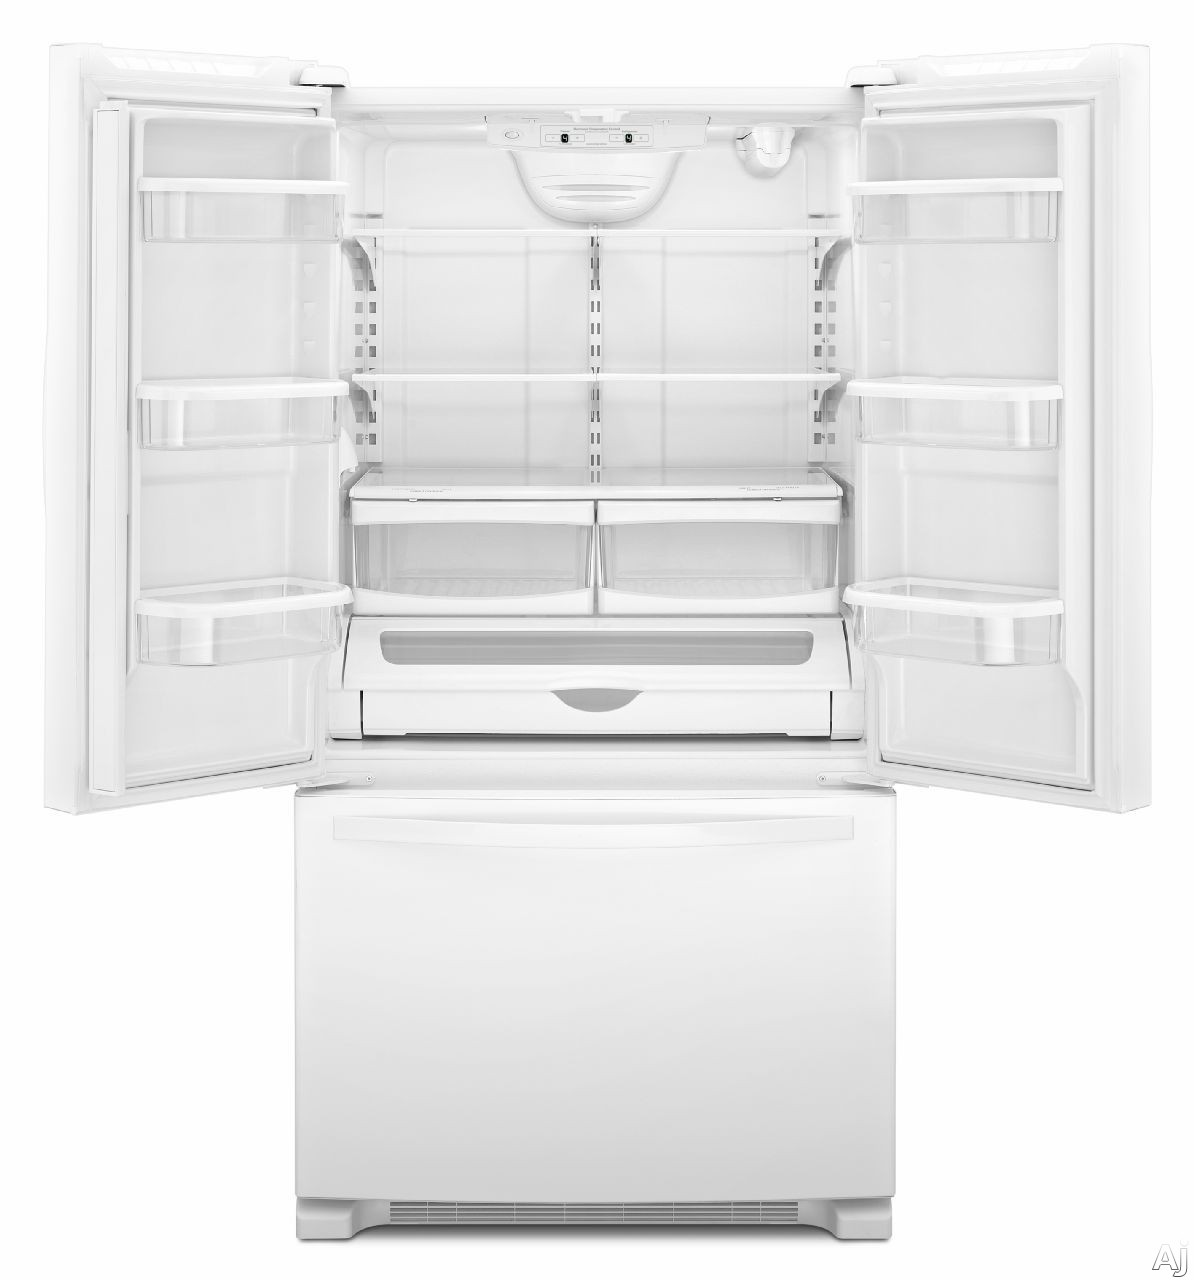 Whirlpool Wrf535swb 24 8 Cu Ft French Door Refrigerator With 4 Frameless Glass Shelves